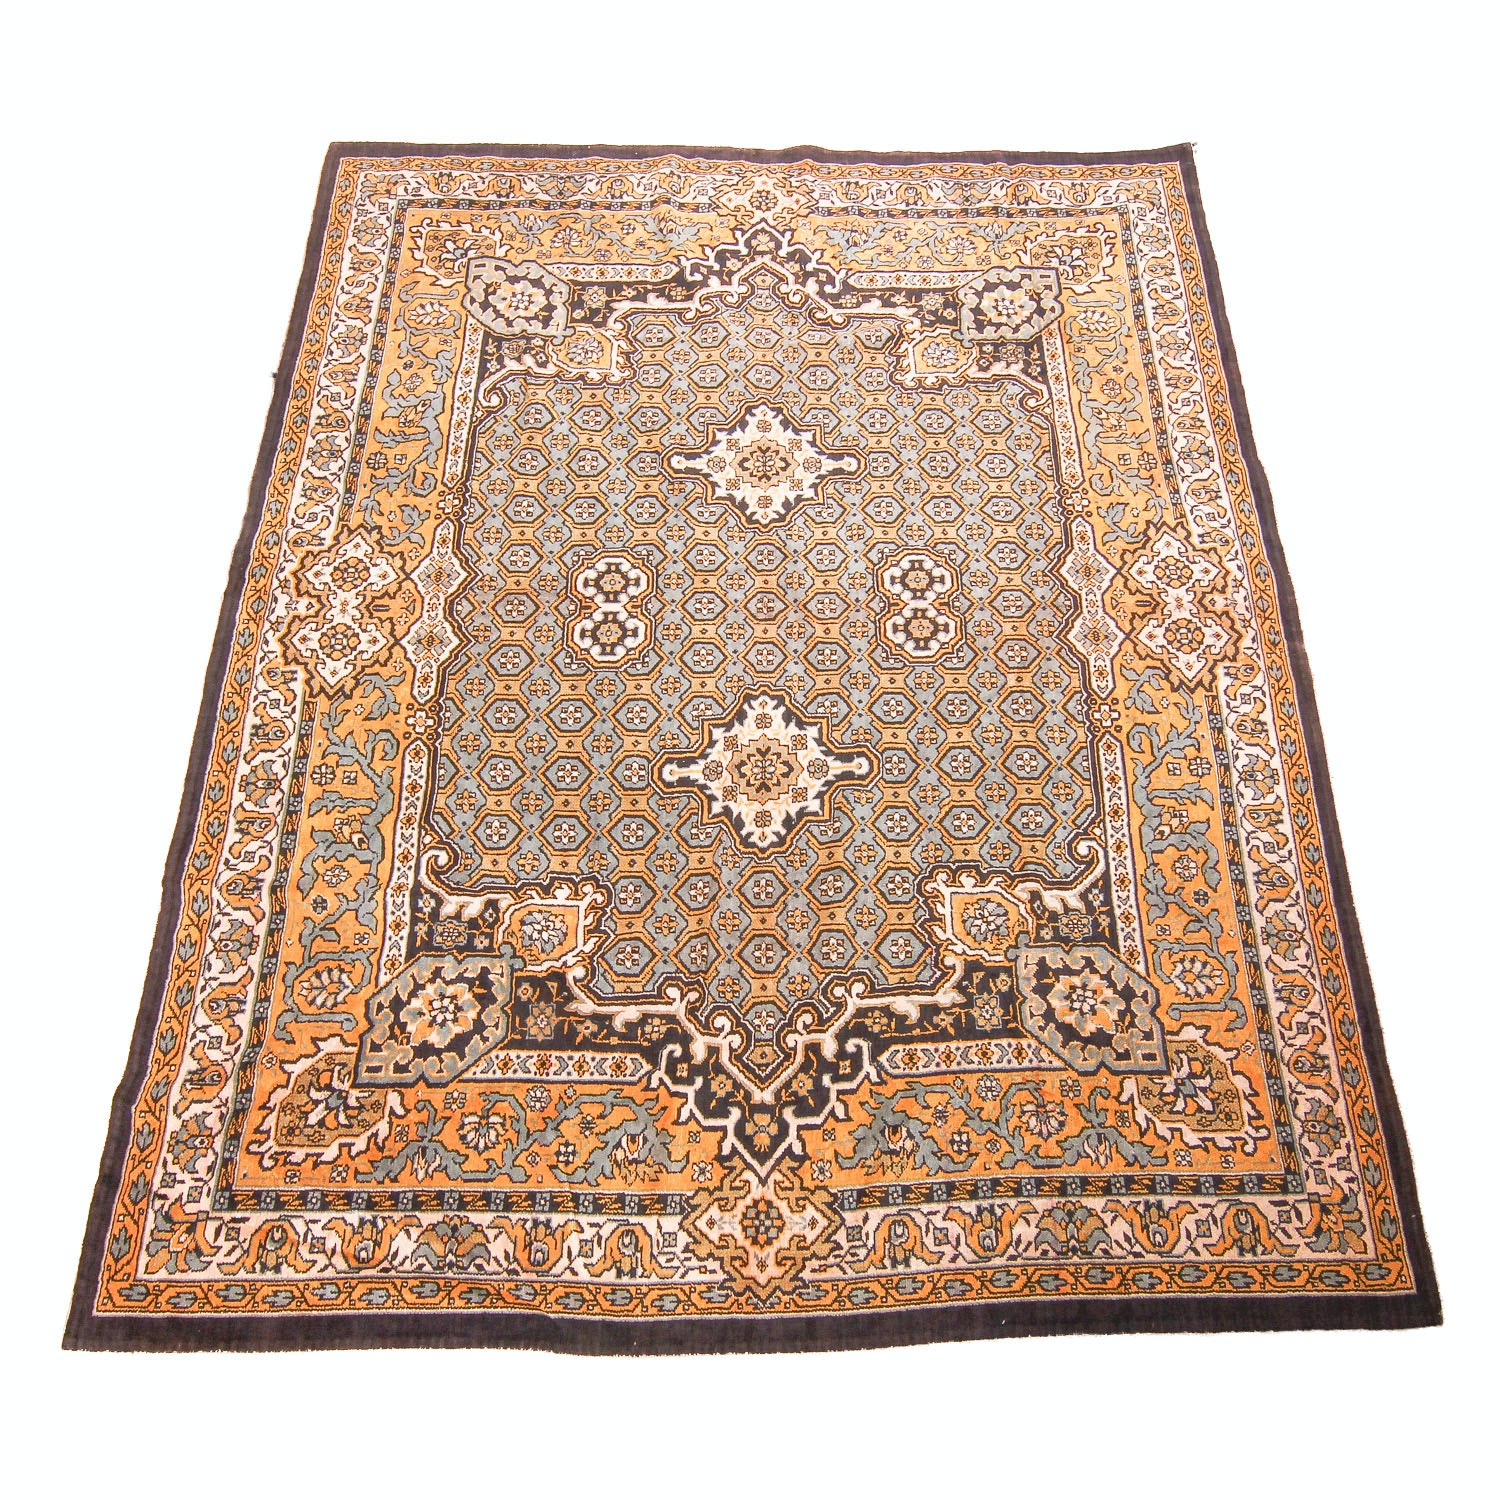 Power Loomed Vintage Persian-Style Area Rug